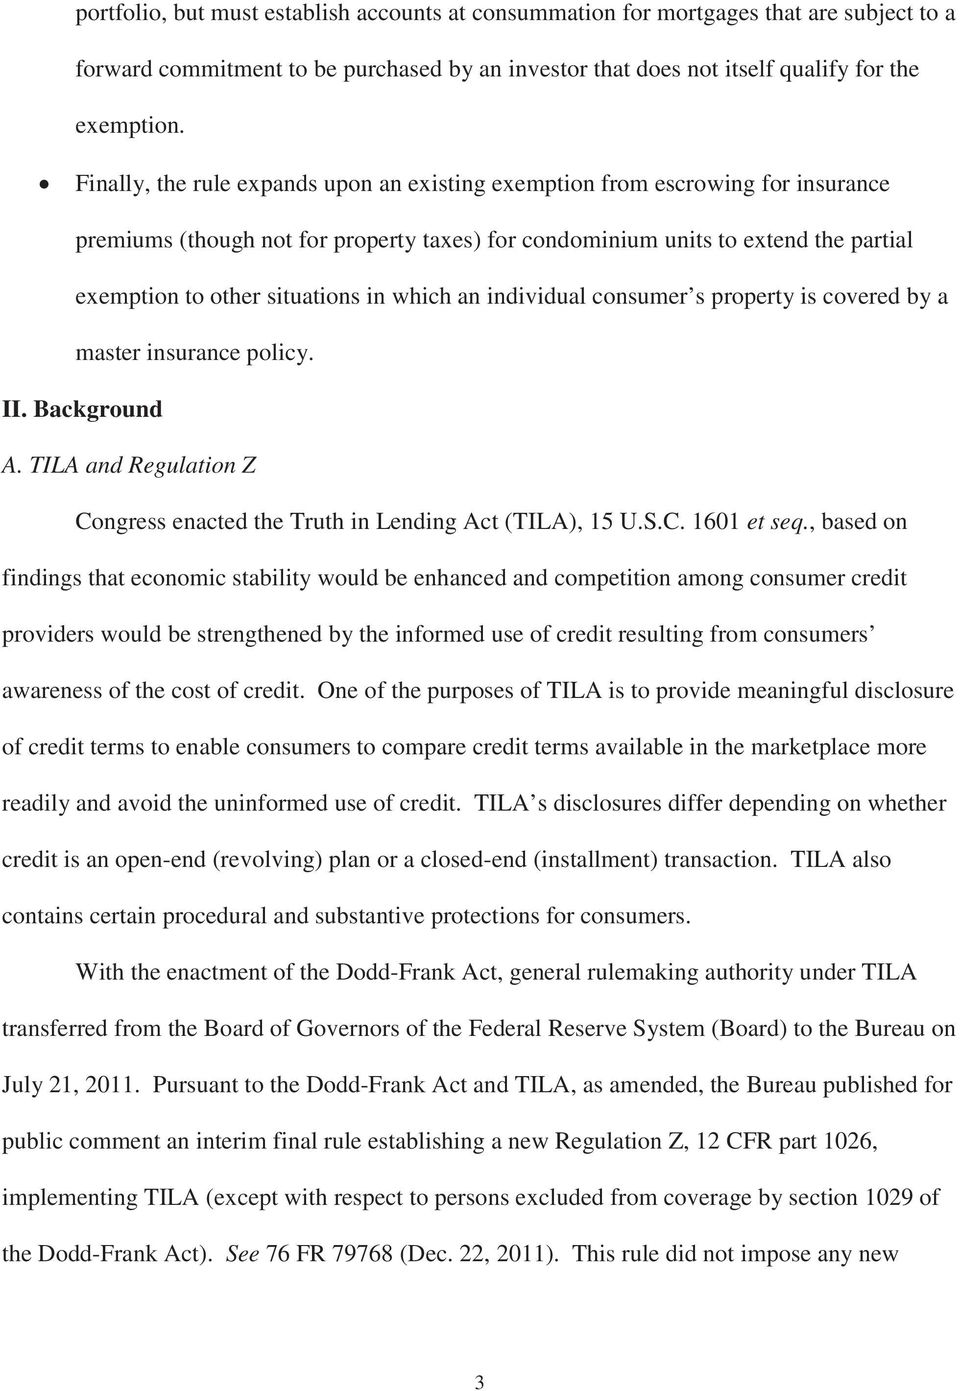 which an individual consumer s property is covered by a master insurance policy. II. Background A. TILA and Regulation Z Congress enacted the Truth in Lending Act (TILA), 15 U.S.C. 1601 et seq.